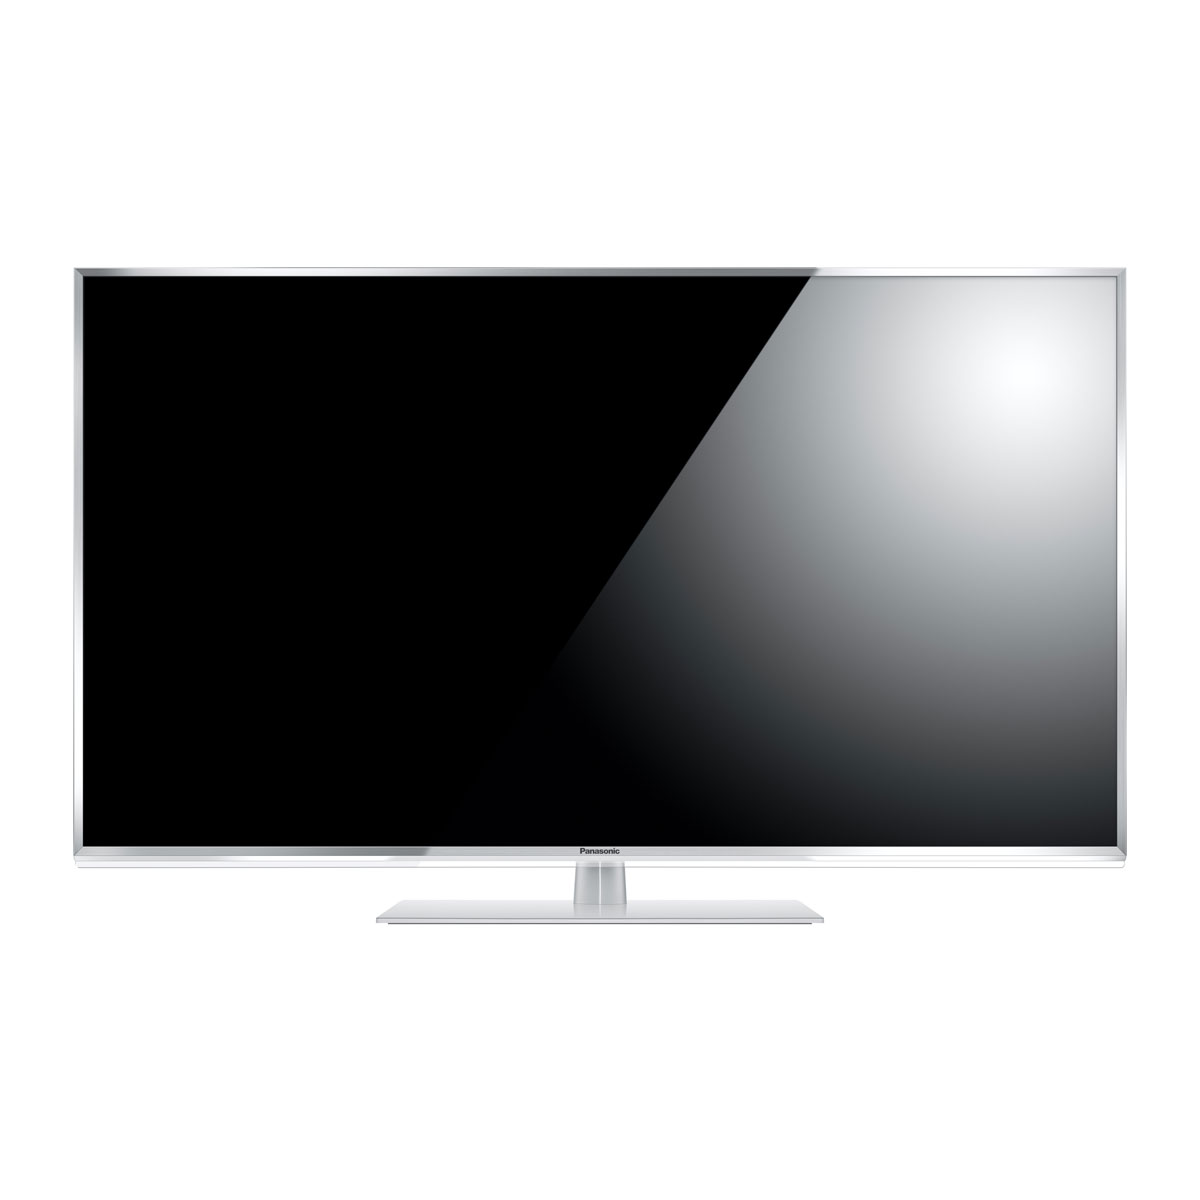 panasonic tx l42et60e tv panasonic sur ldlc. Black Bedroom Furniture Sets. Home Design Ideas